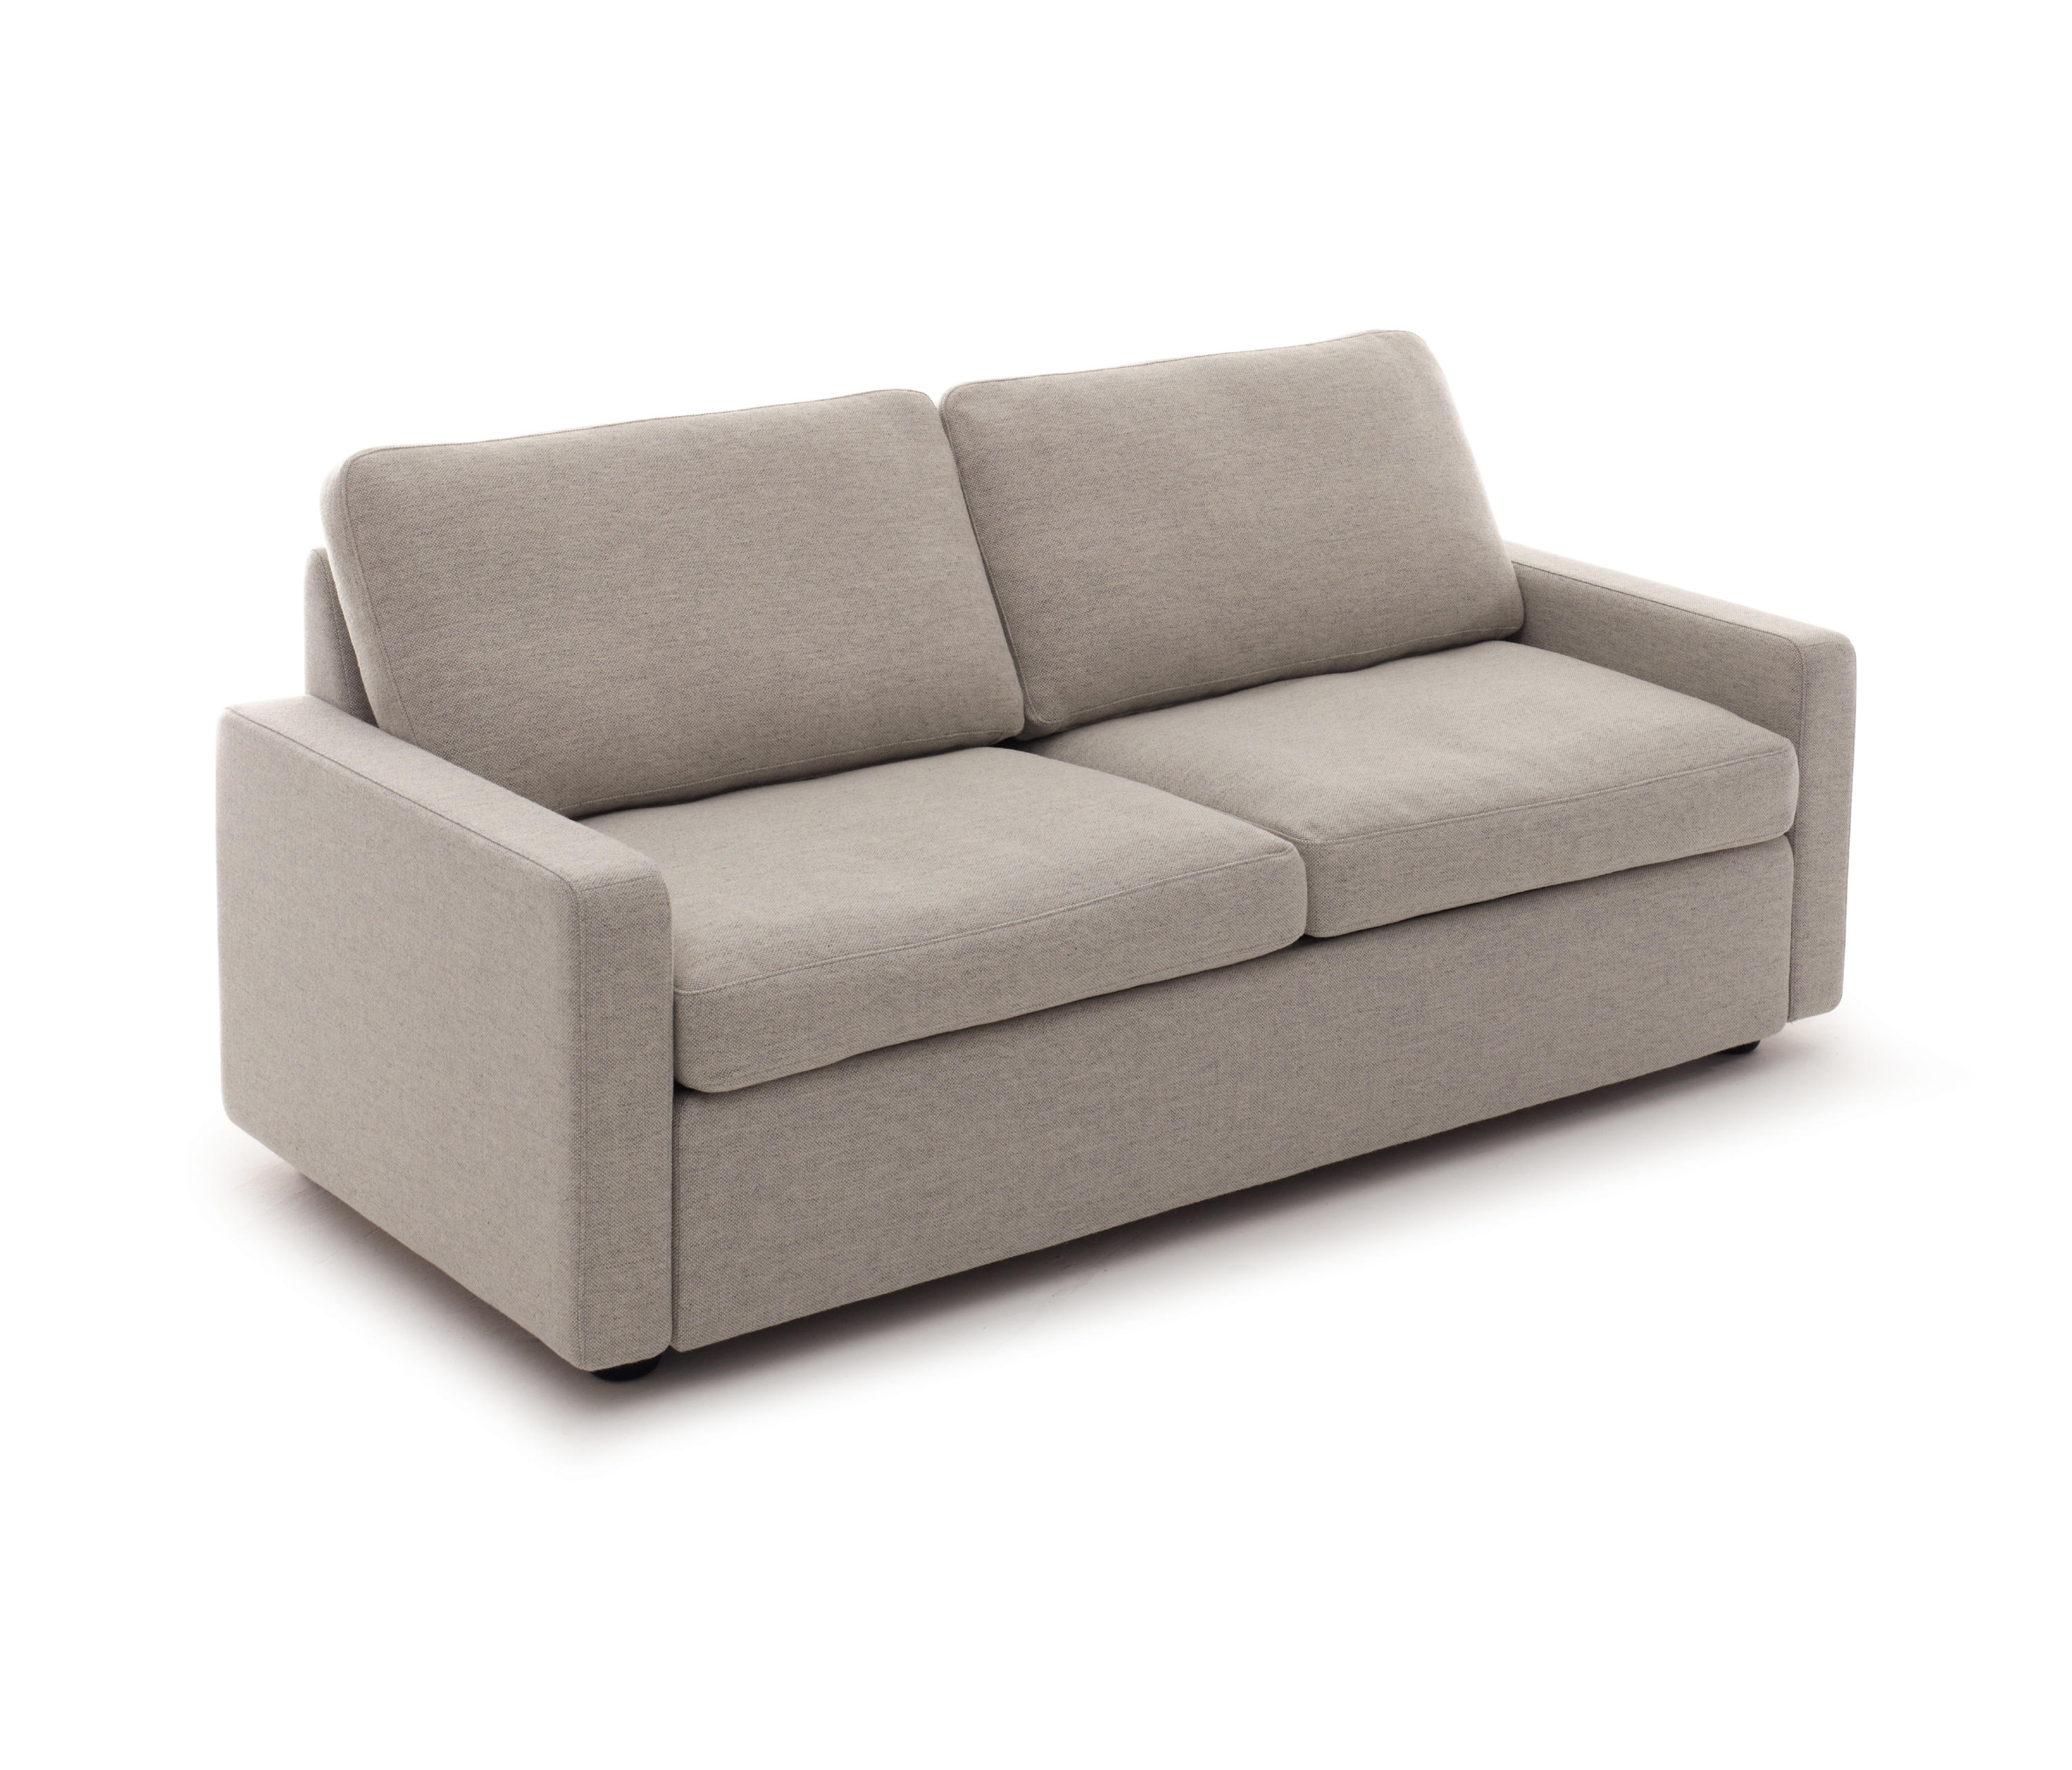 conseta sofa bed sofa beds from cor architonic. Black Bedroom Furniture Sets. Home Design Ideas